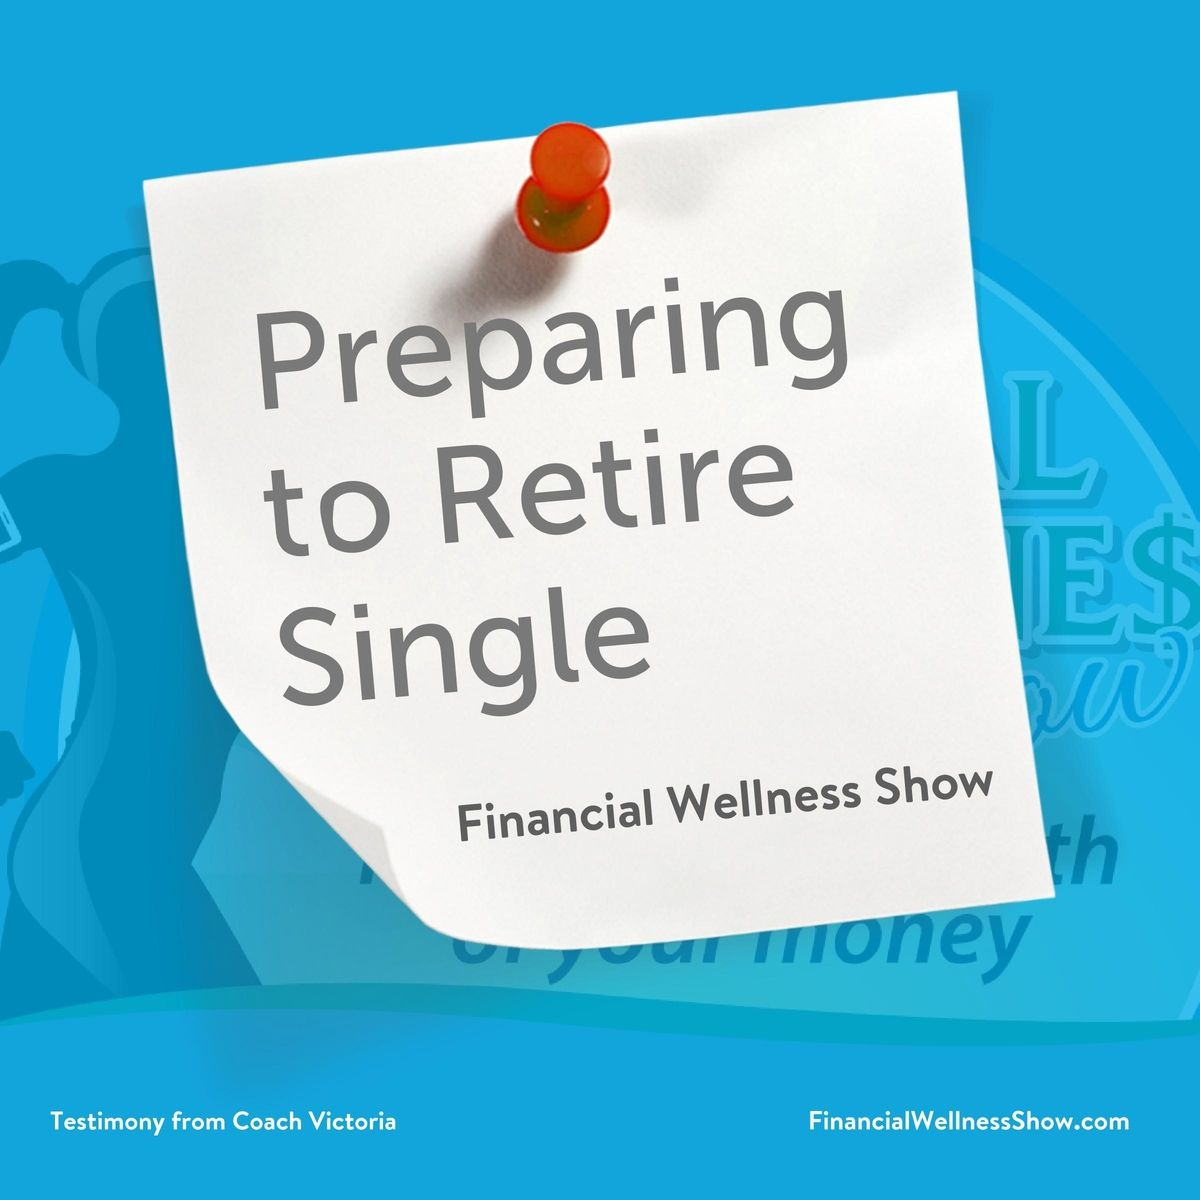 What it's Like to Prepare for Retirement as a Single - FWS025